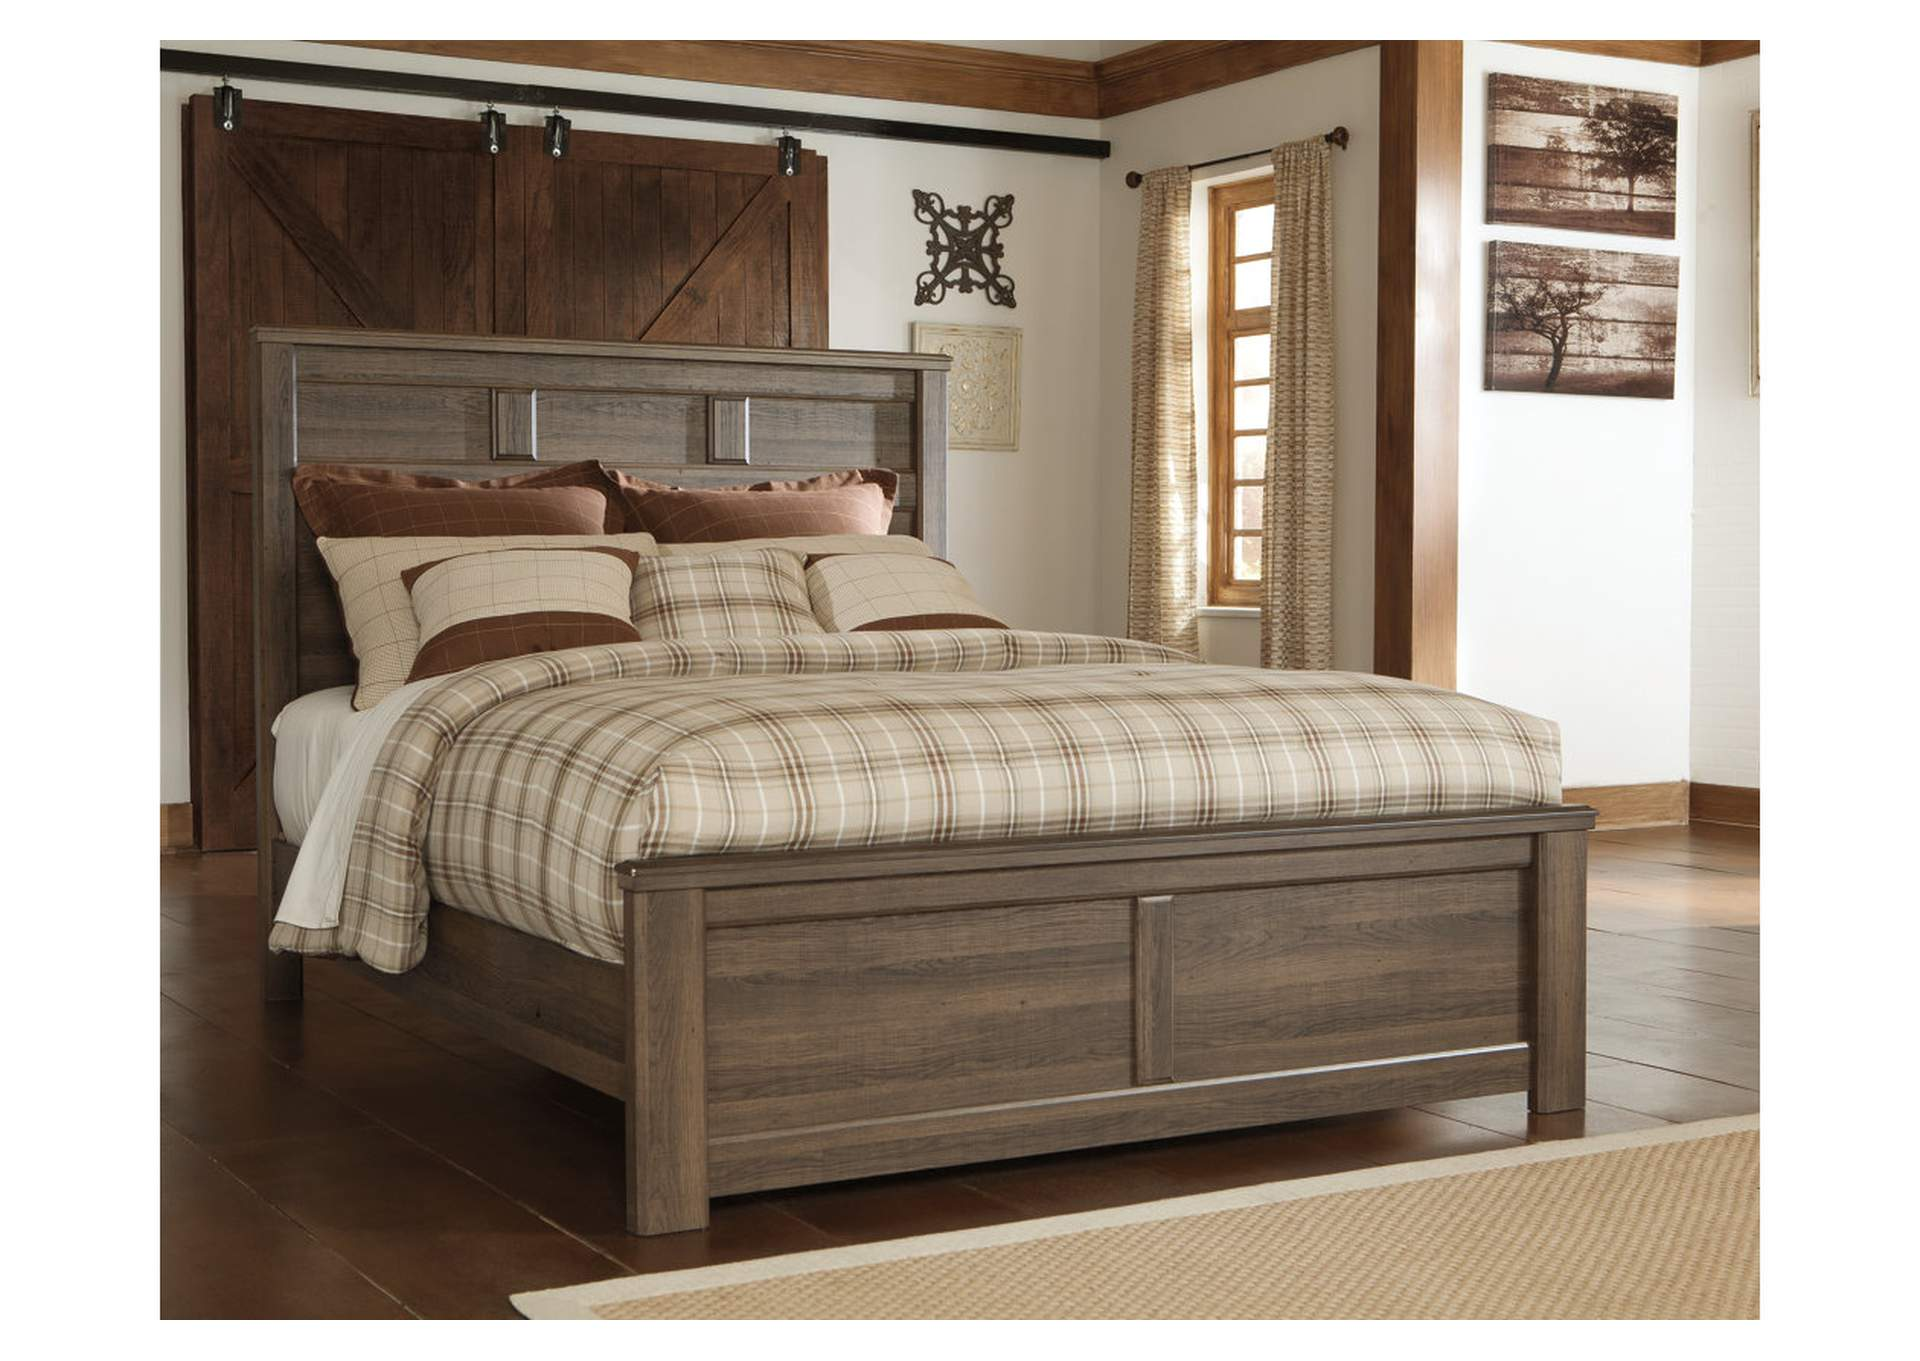 Juararo Queen Panel Bed,Signature Design By Ashley